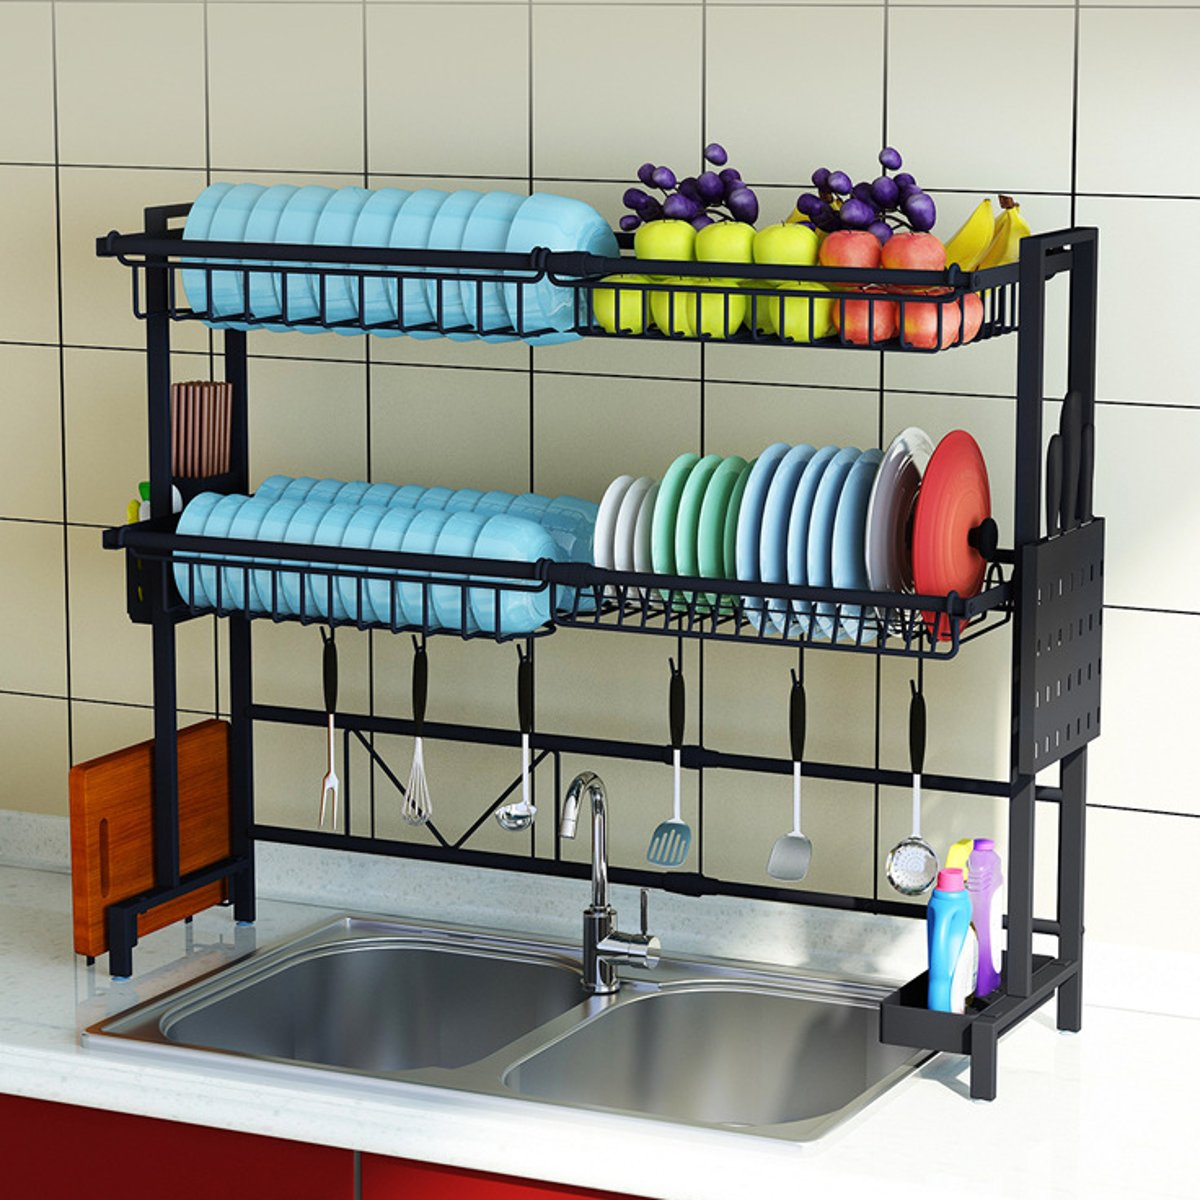 1/2Tier Multi-use Stainless Steel Dishes Rack Dual Sink Drain Rack Adjustable Kitchen Oragnizer Rack Dish Shelf Sink Drying Rack